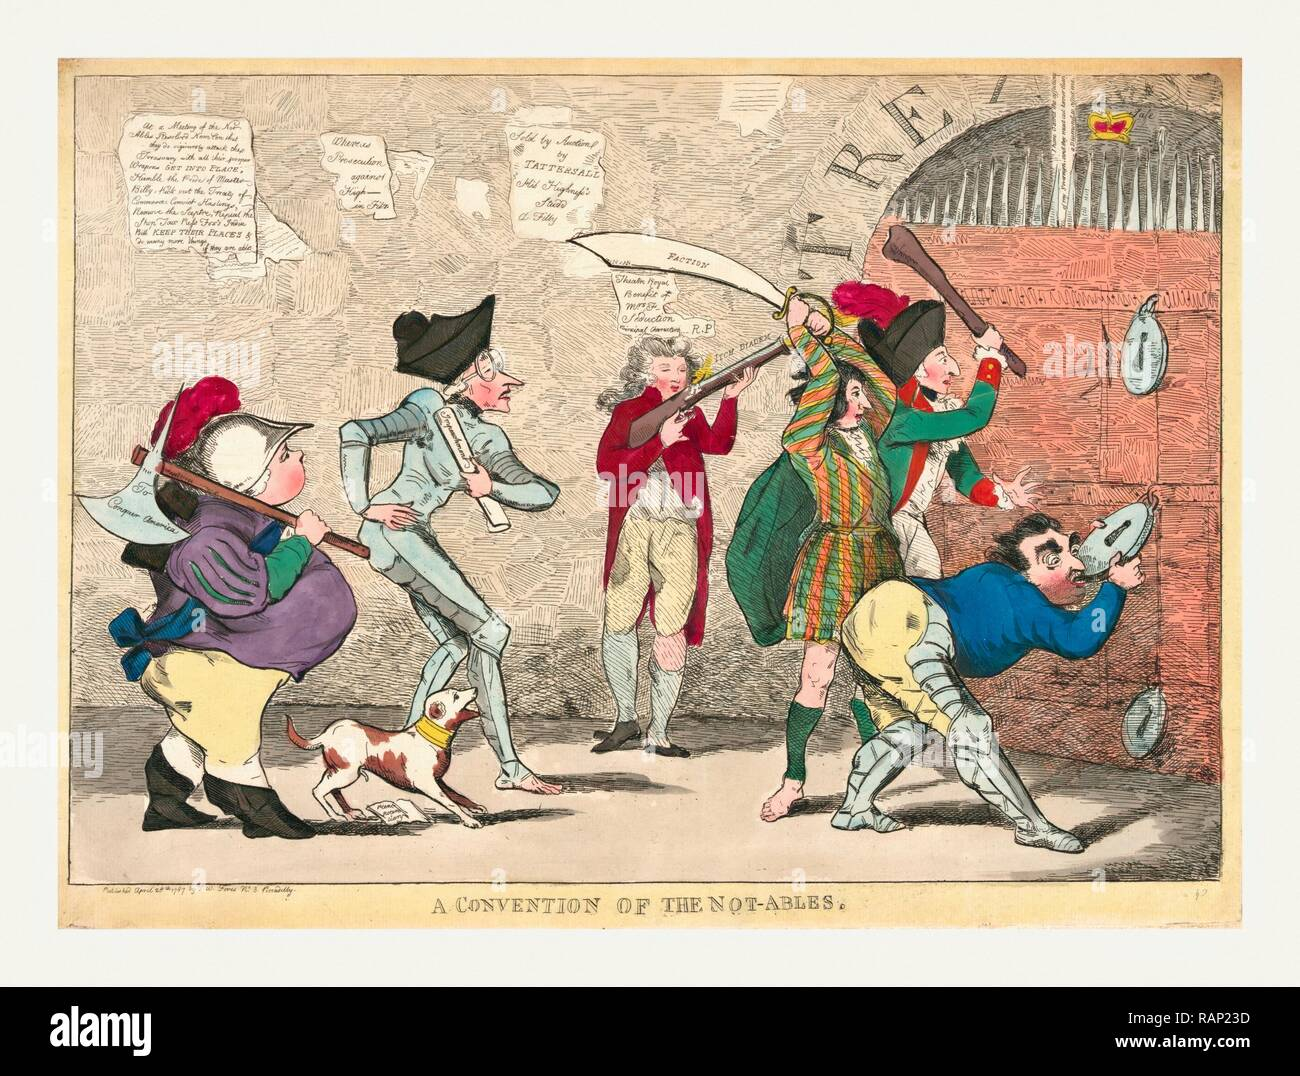 A convention of the not-ables, engraving 1787, Lord North, Edmund Burke, Charles Fox, the Prince of Wales, and others reimagined - Stock Image